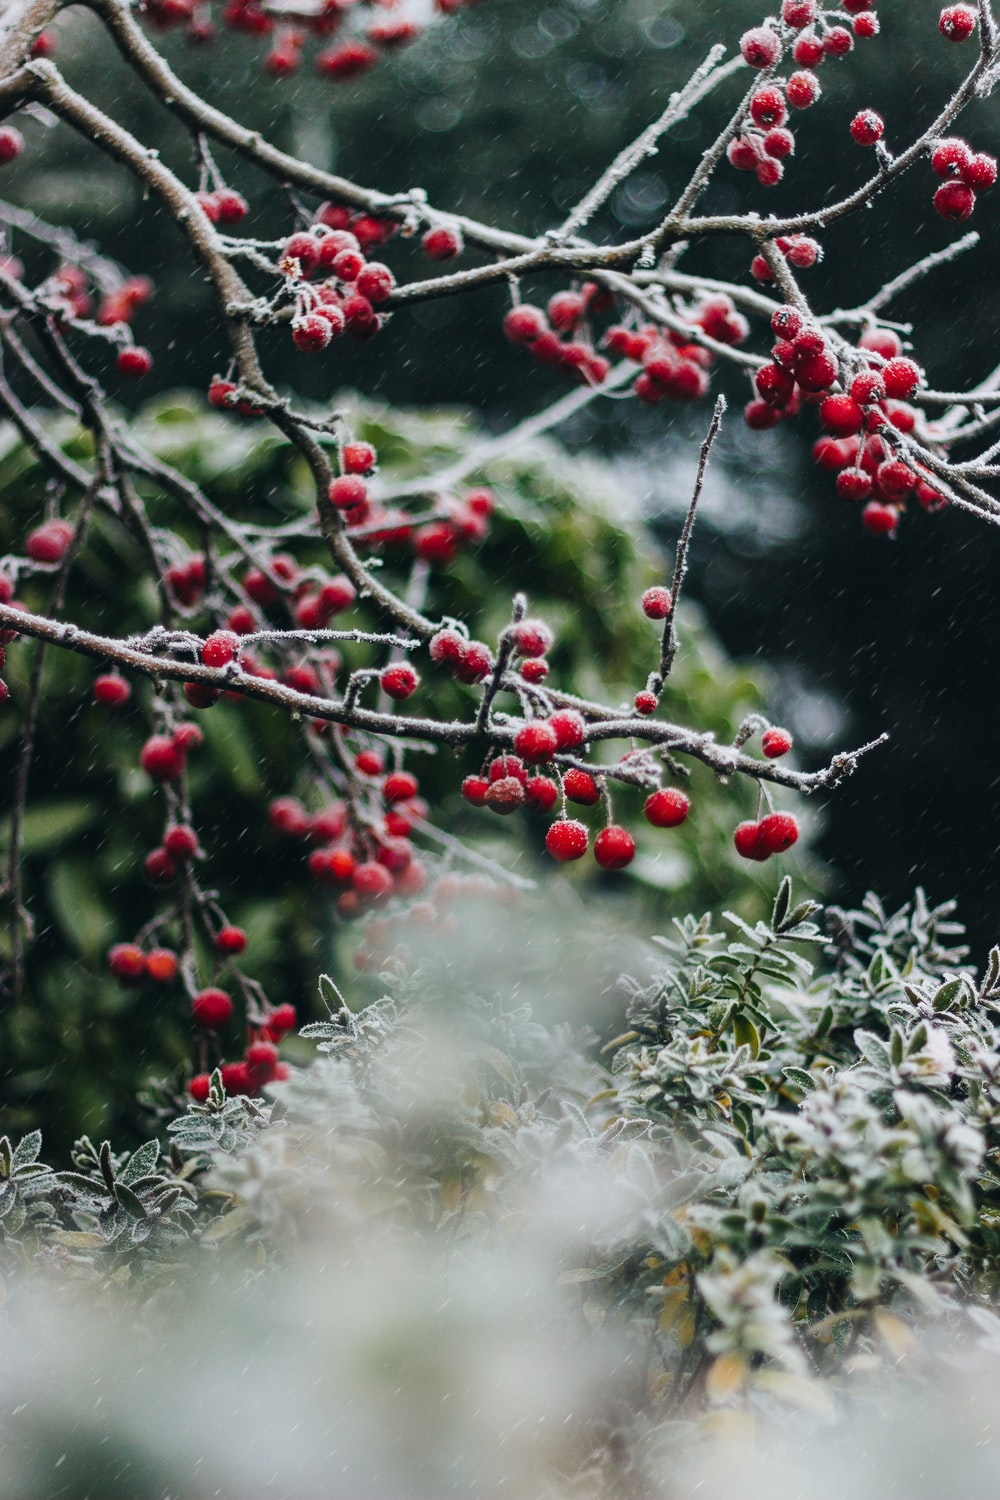 Christmas Scenes.Christmas Scenes 21 Best Free Christmas Holiday Plant